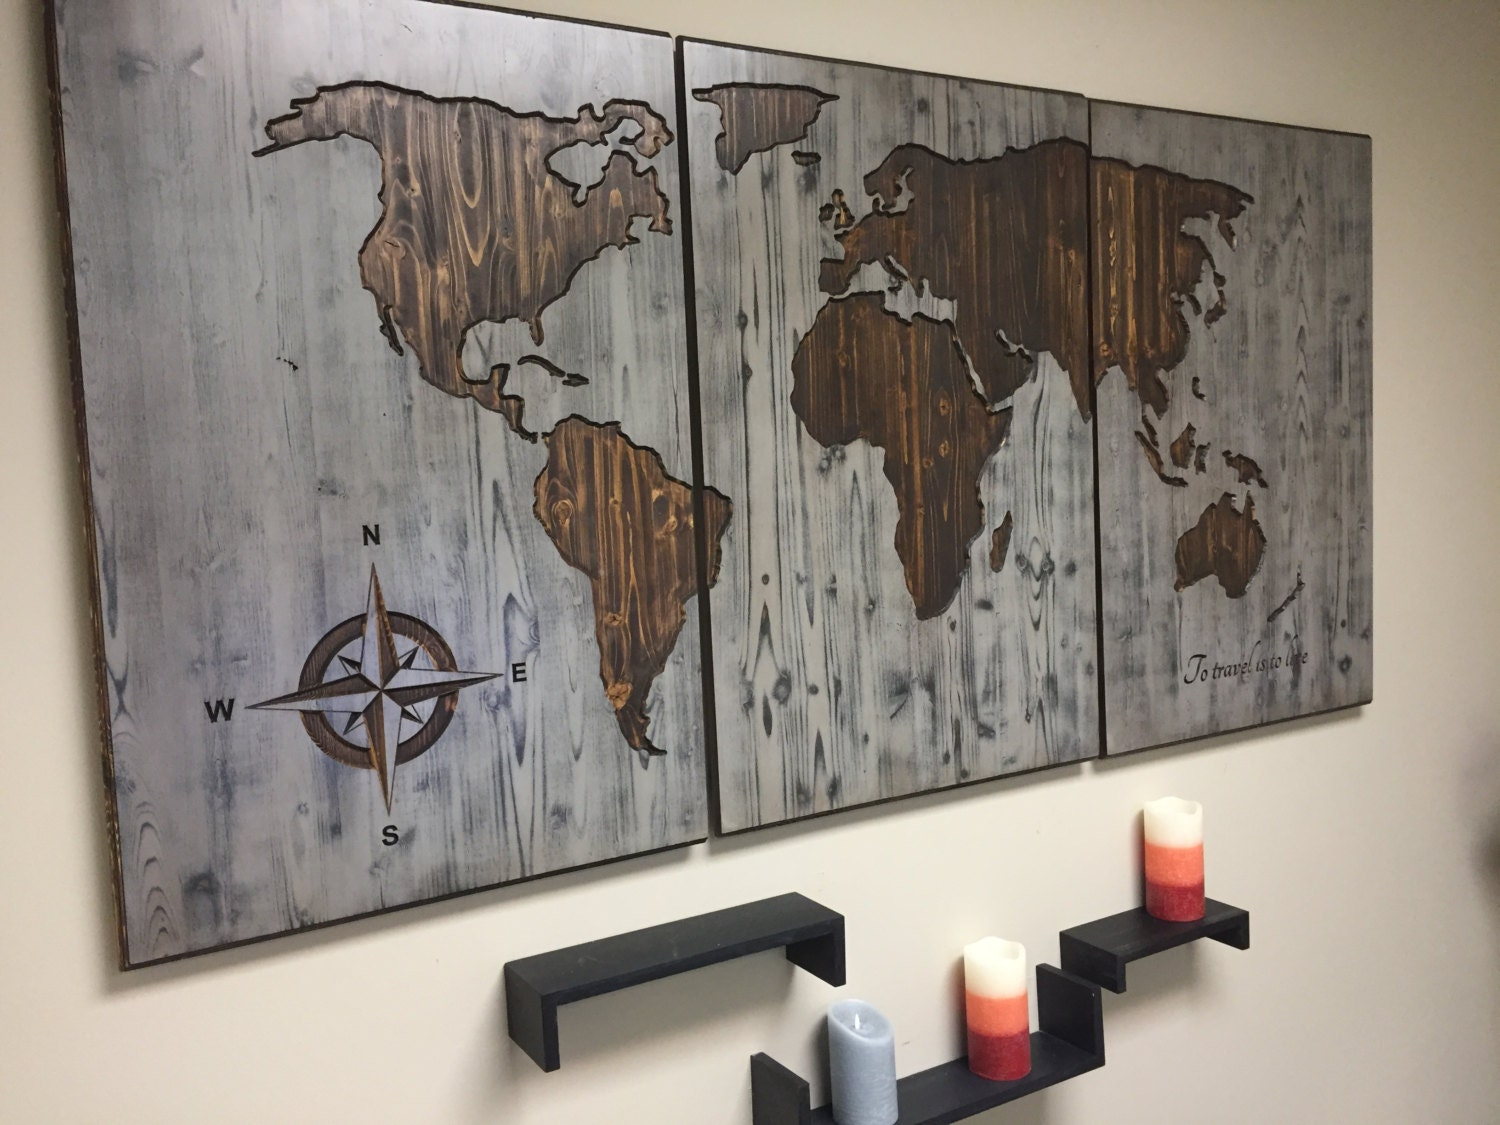 World Map Wood Wall Art Carved Custom Home Decor Wooden Home Decorators Catalog Best Ideas of Home Decor and Design [homedecoratorscatalog.us]